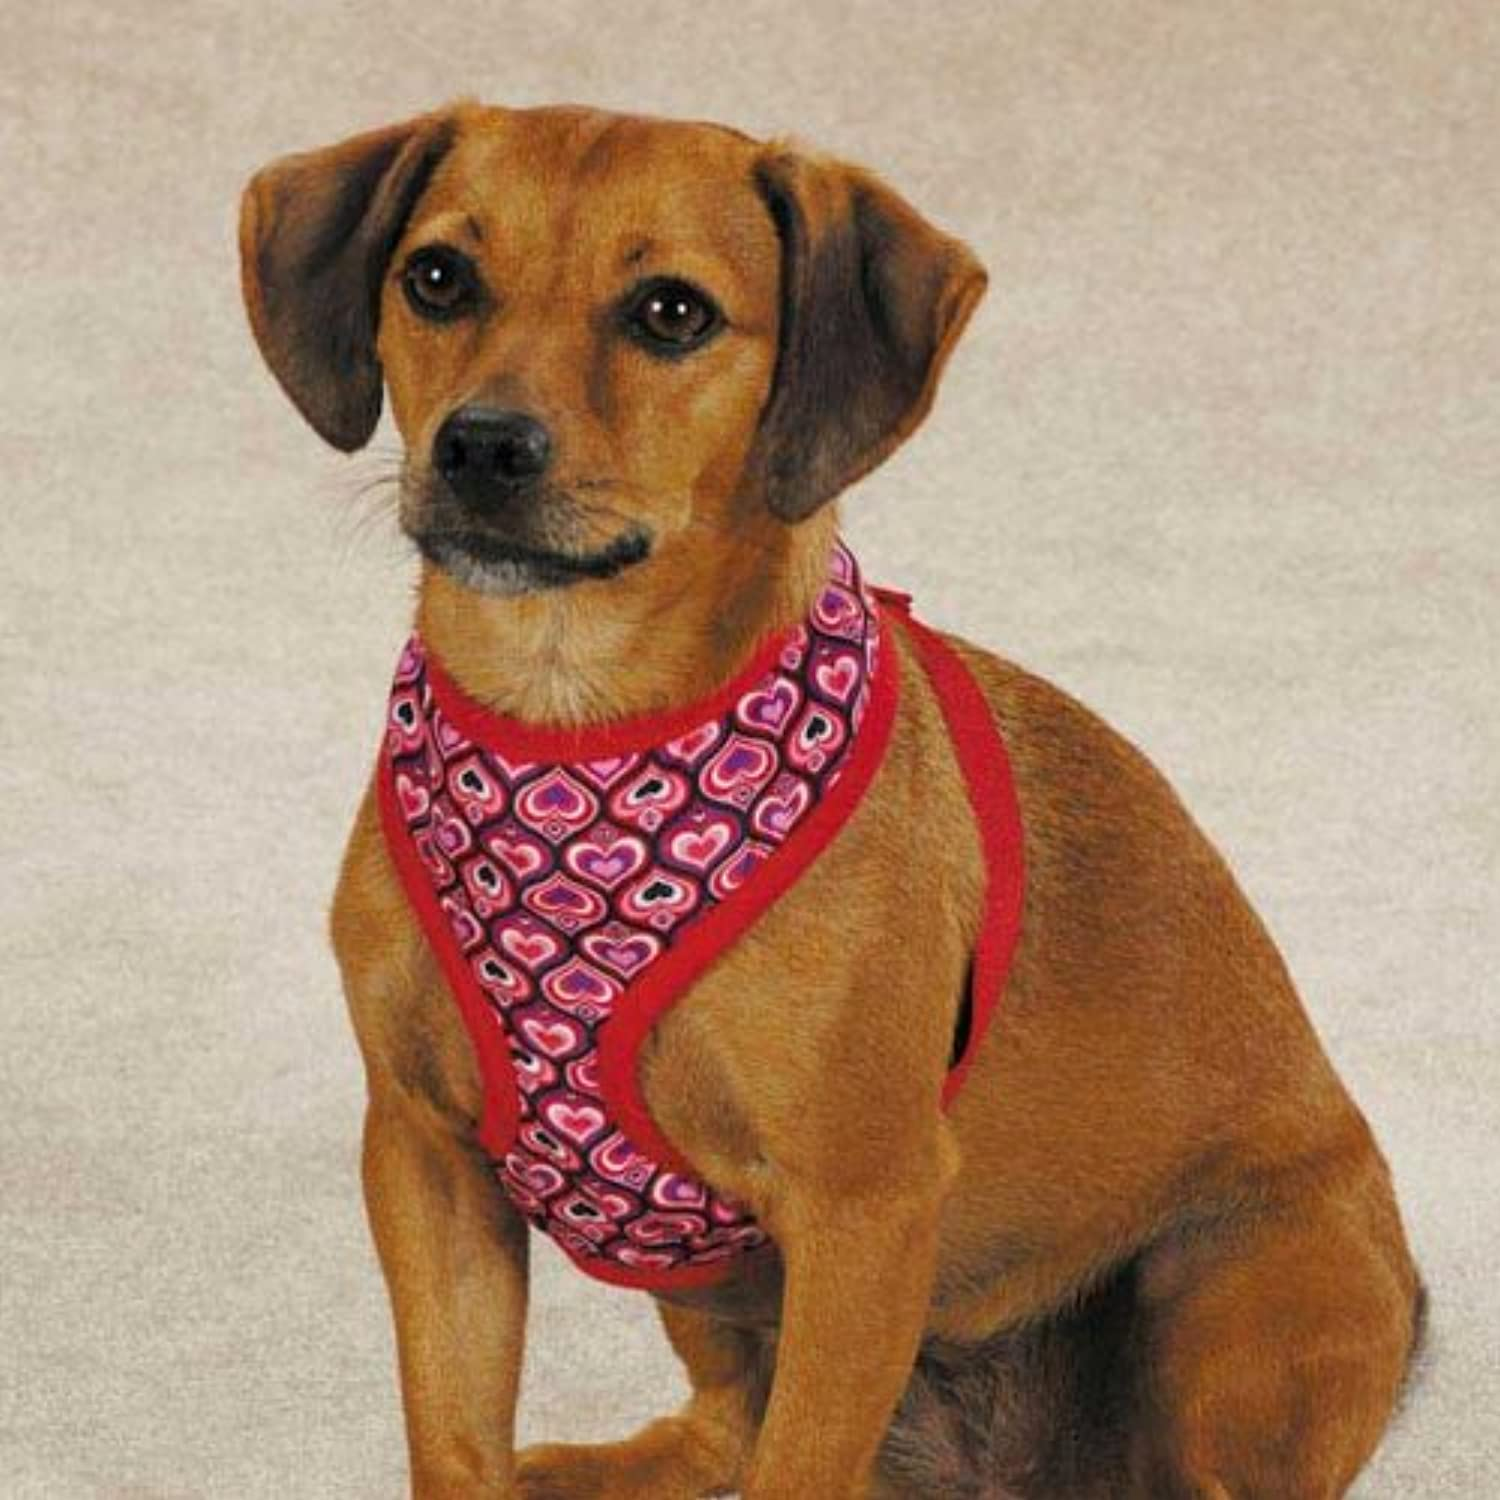 East Side Collection ZW5085 16 83 Full of Heart Harness, Medium, Red